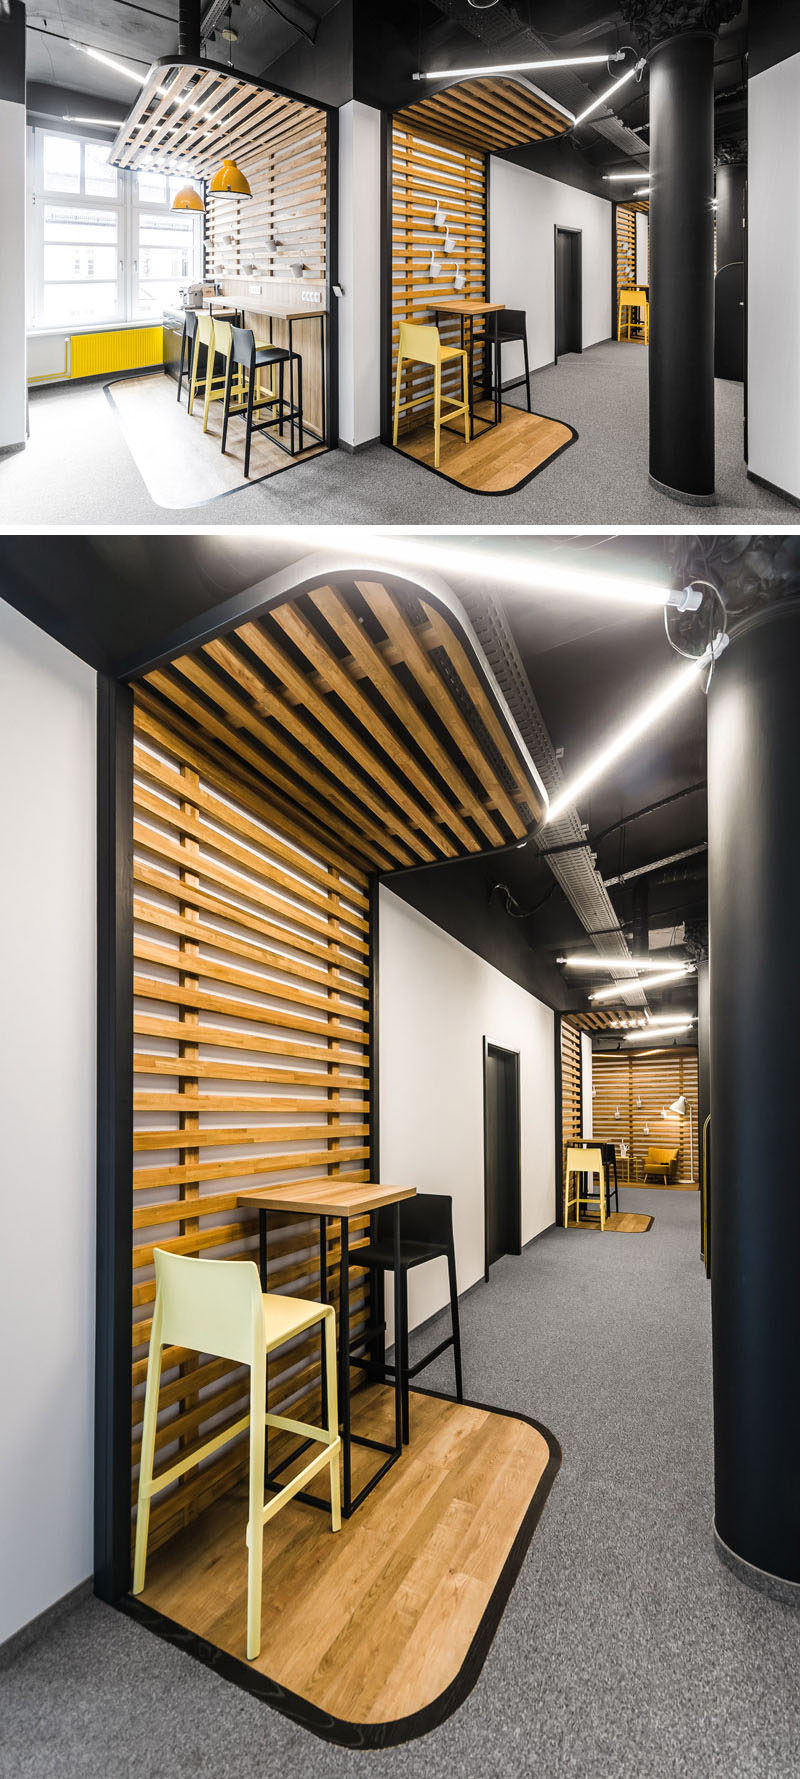 In this modern office, there's clearly defined seating areas with wood slats and a black border that frame wood bar tables with black and yellow seating.